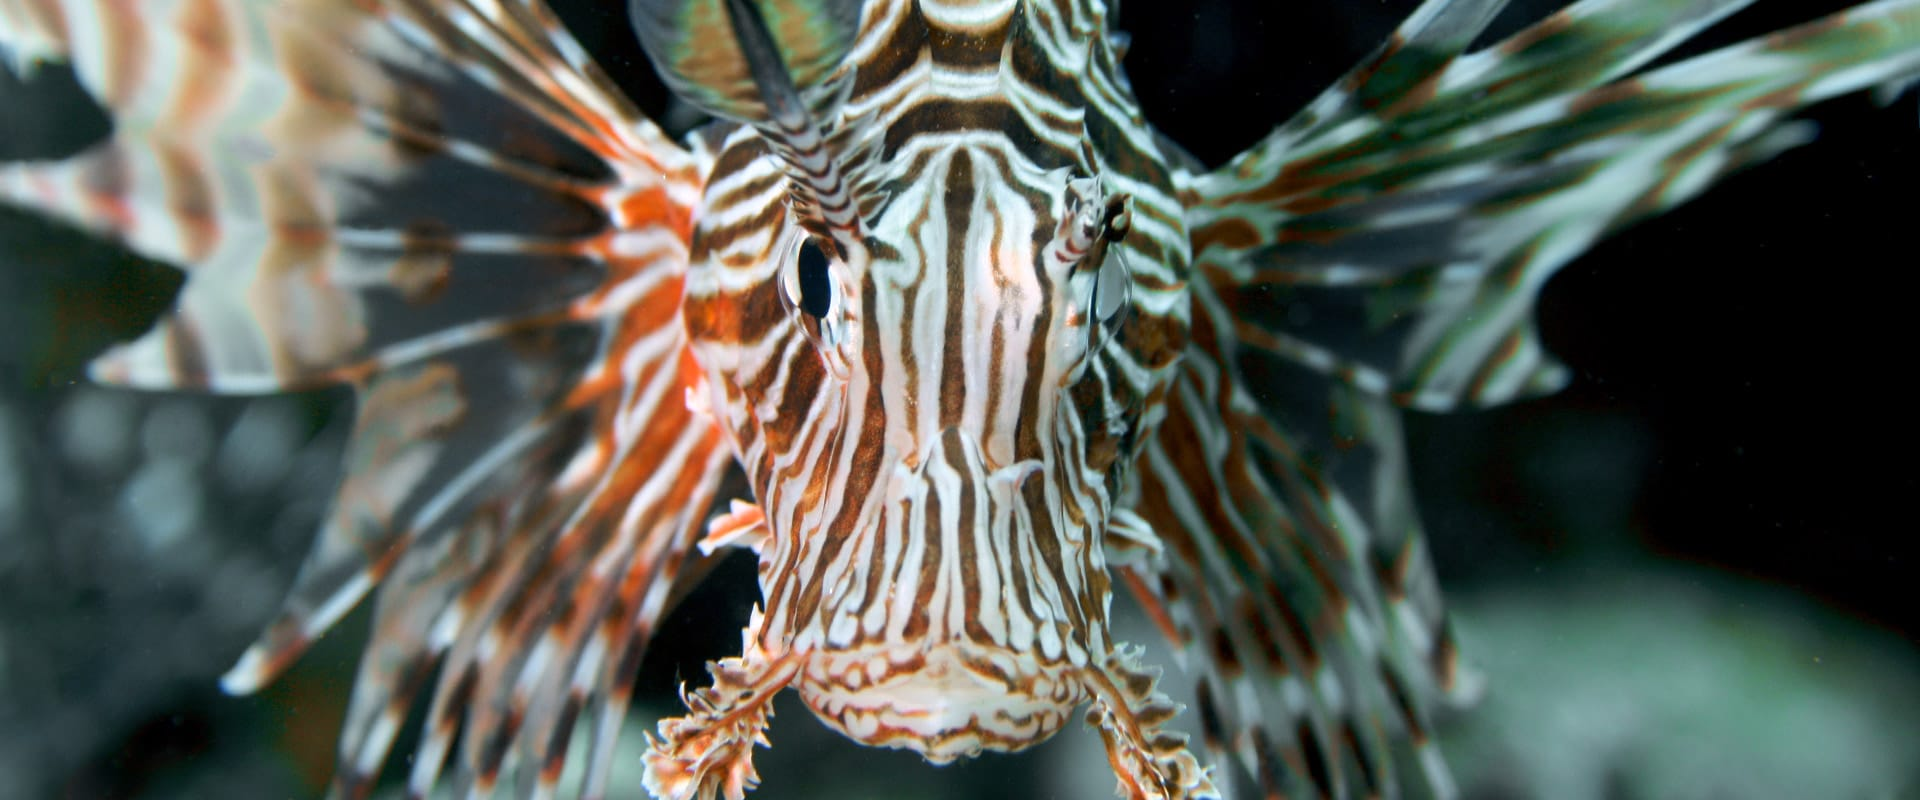 Lionfish in Dahab Red Sea